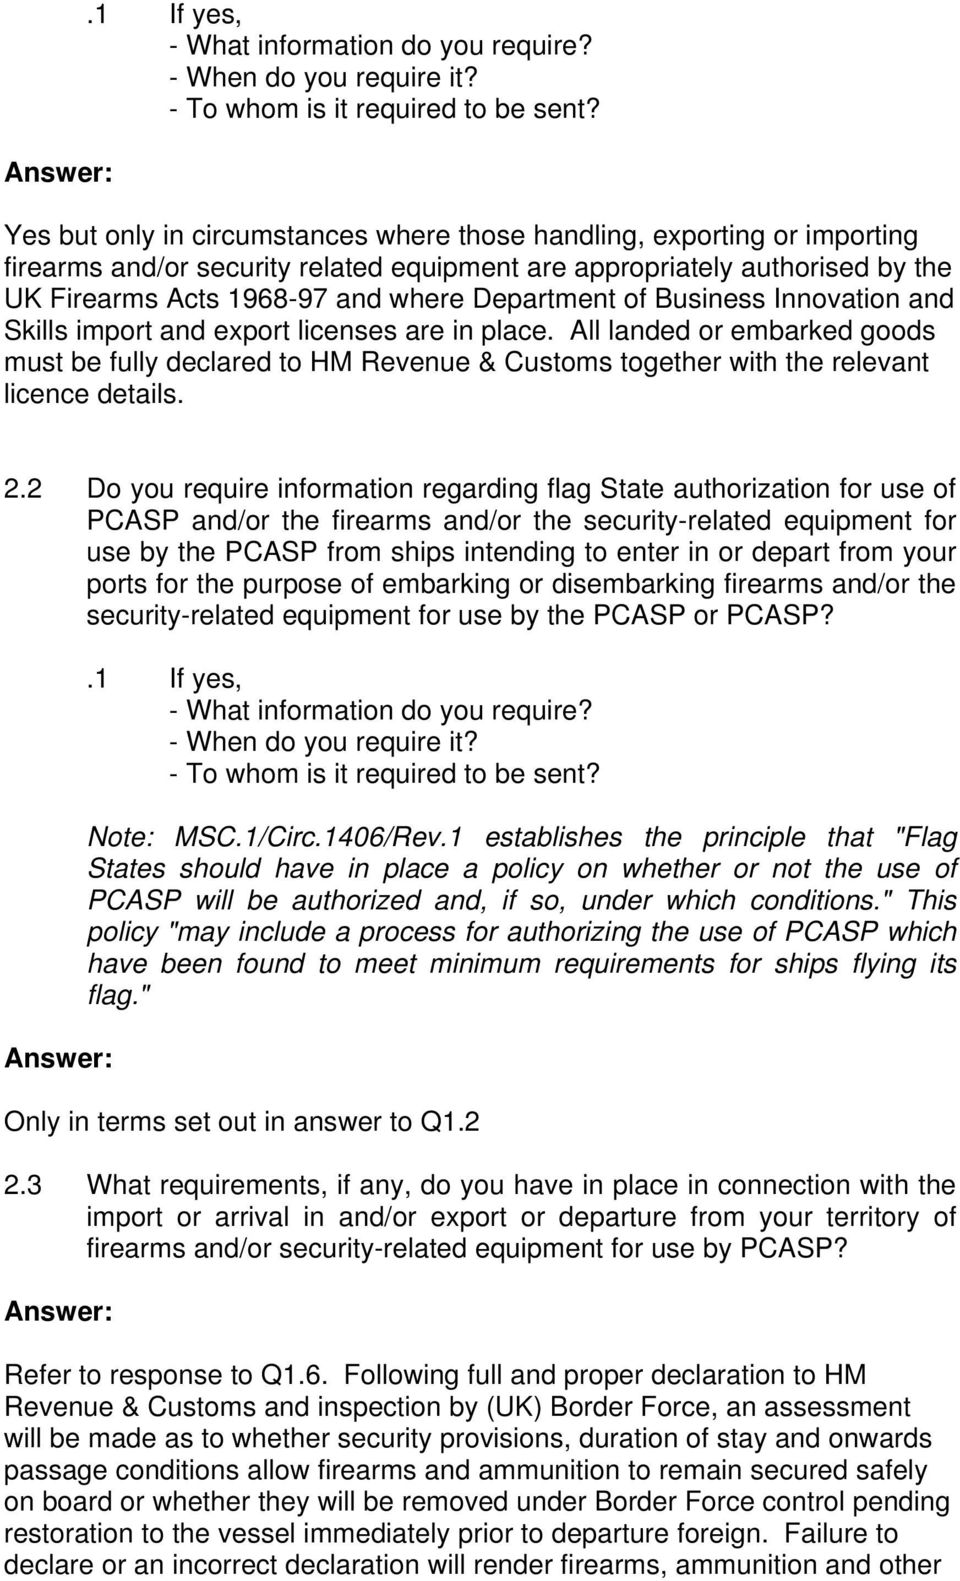 2 Do you require information regarding flag State authorization for use of PCASP and/or the firearms and/or the security-related equipment for use by the PCASP from ships intending to enter in or